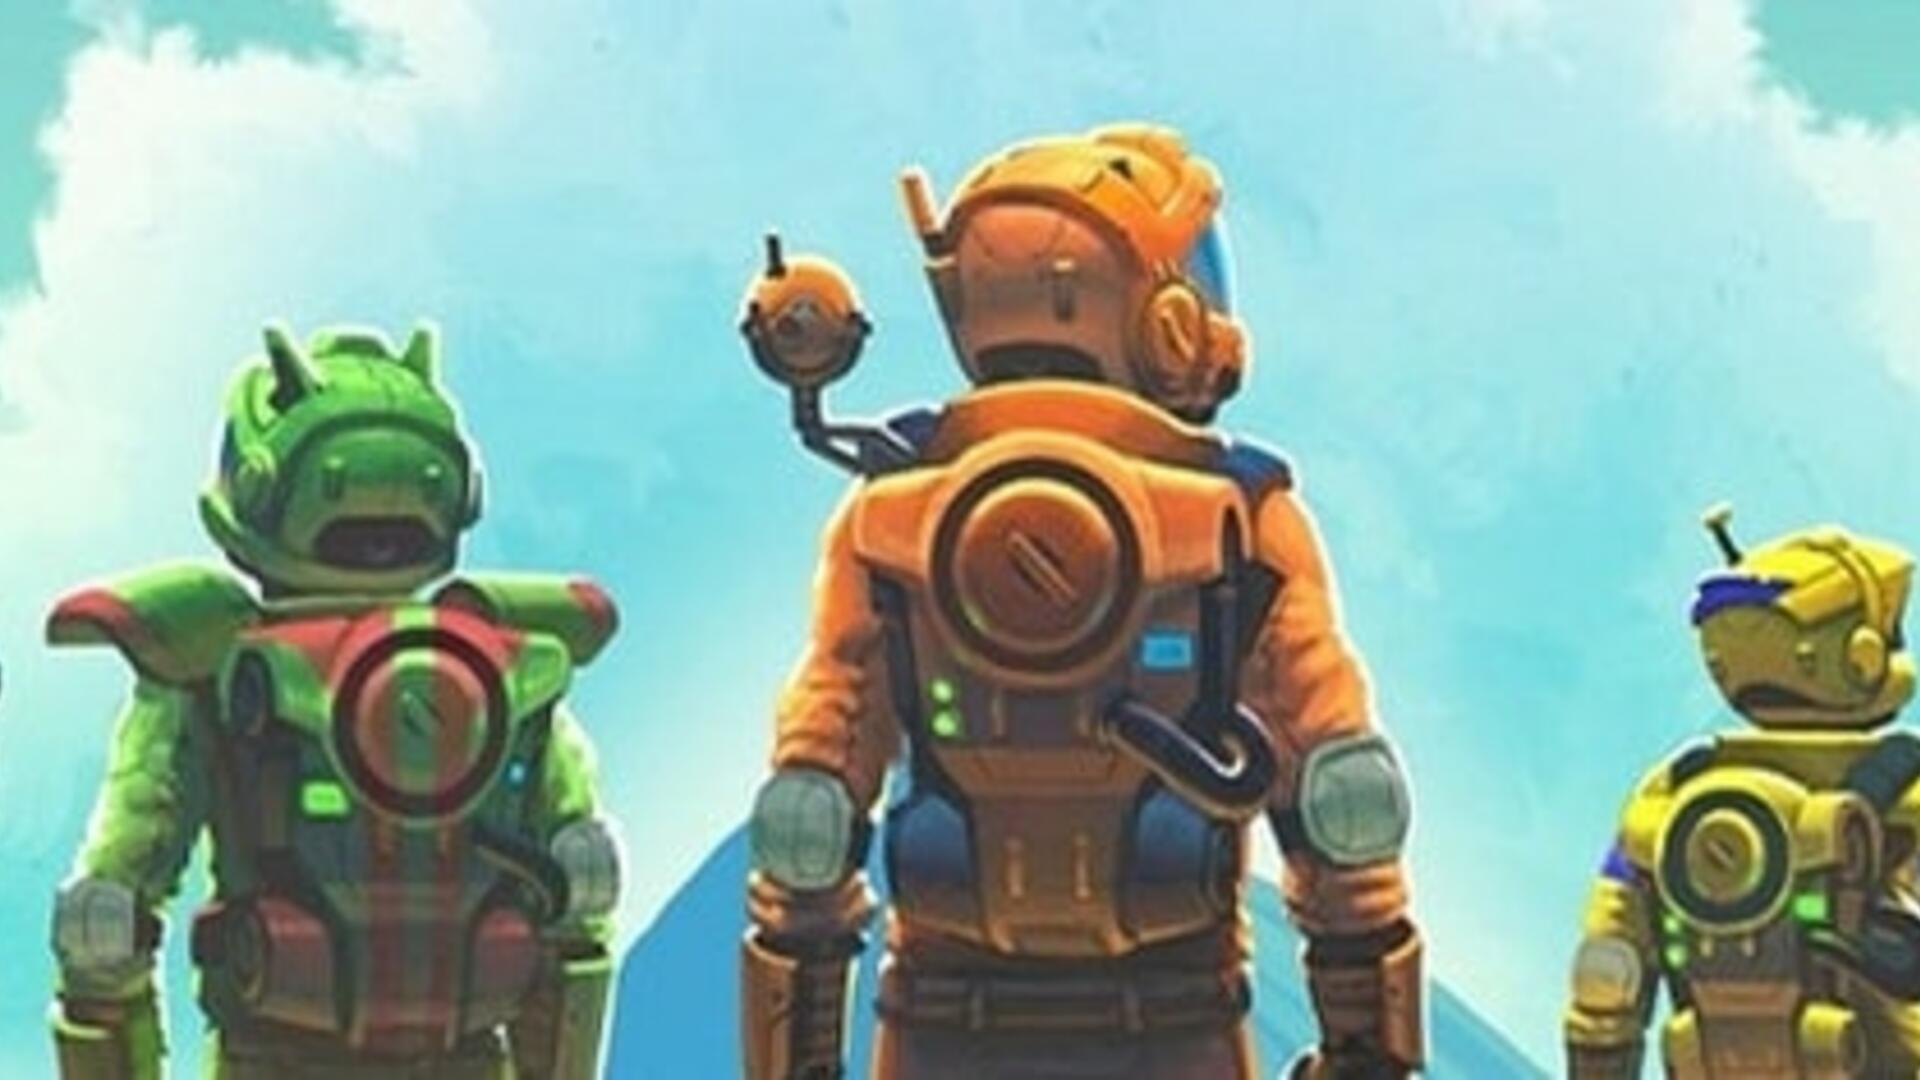 No Man's Sky Multiplayer Guide - Multiplayer Missions, Join